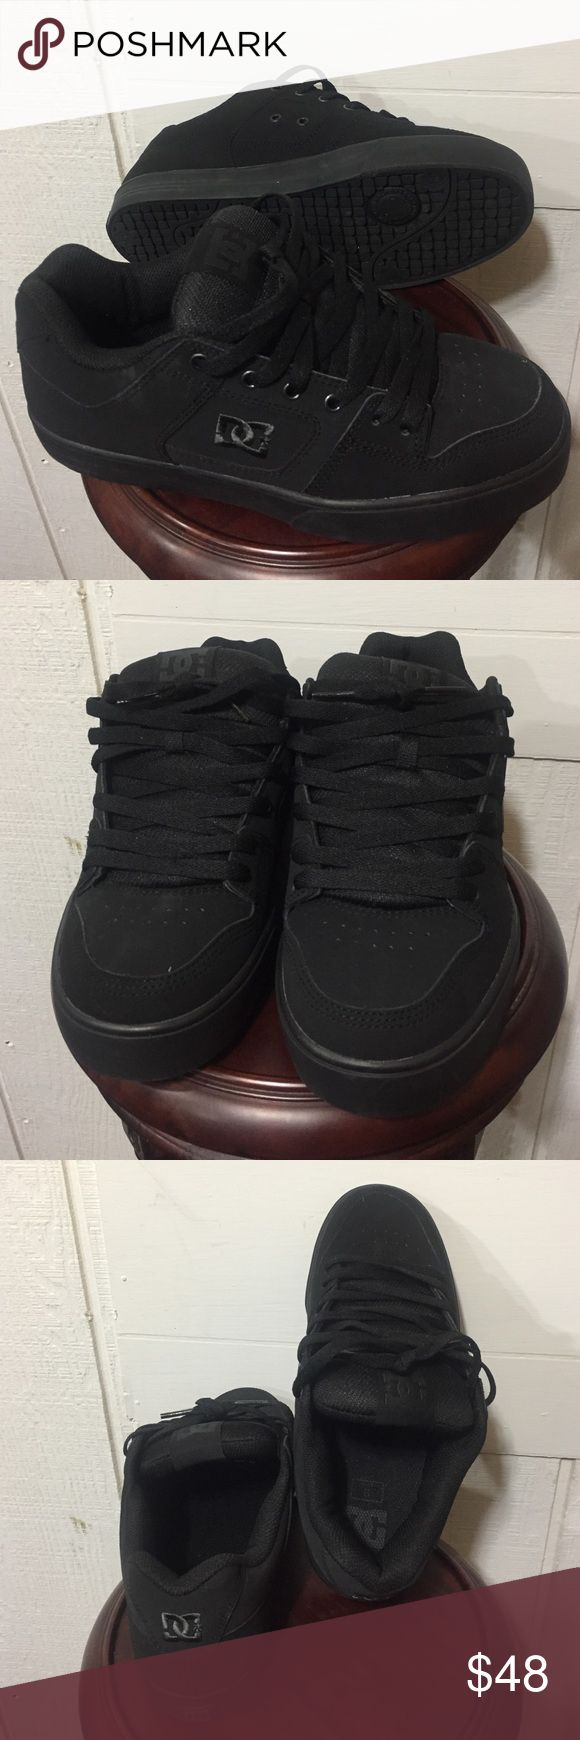 •All Black DC Skate Shoes (9)• D.C. Brand. US size 9, EUR 42. ✨These are like-new.✨ Worn one time. NO issues, stains, tears, odors. All black. Skate shoes.👍🏽 DC Shoes